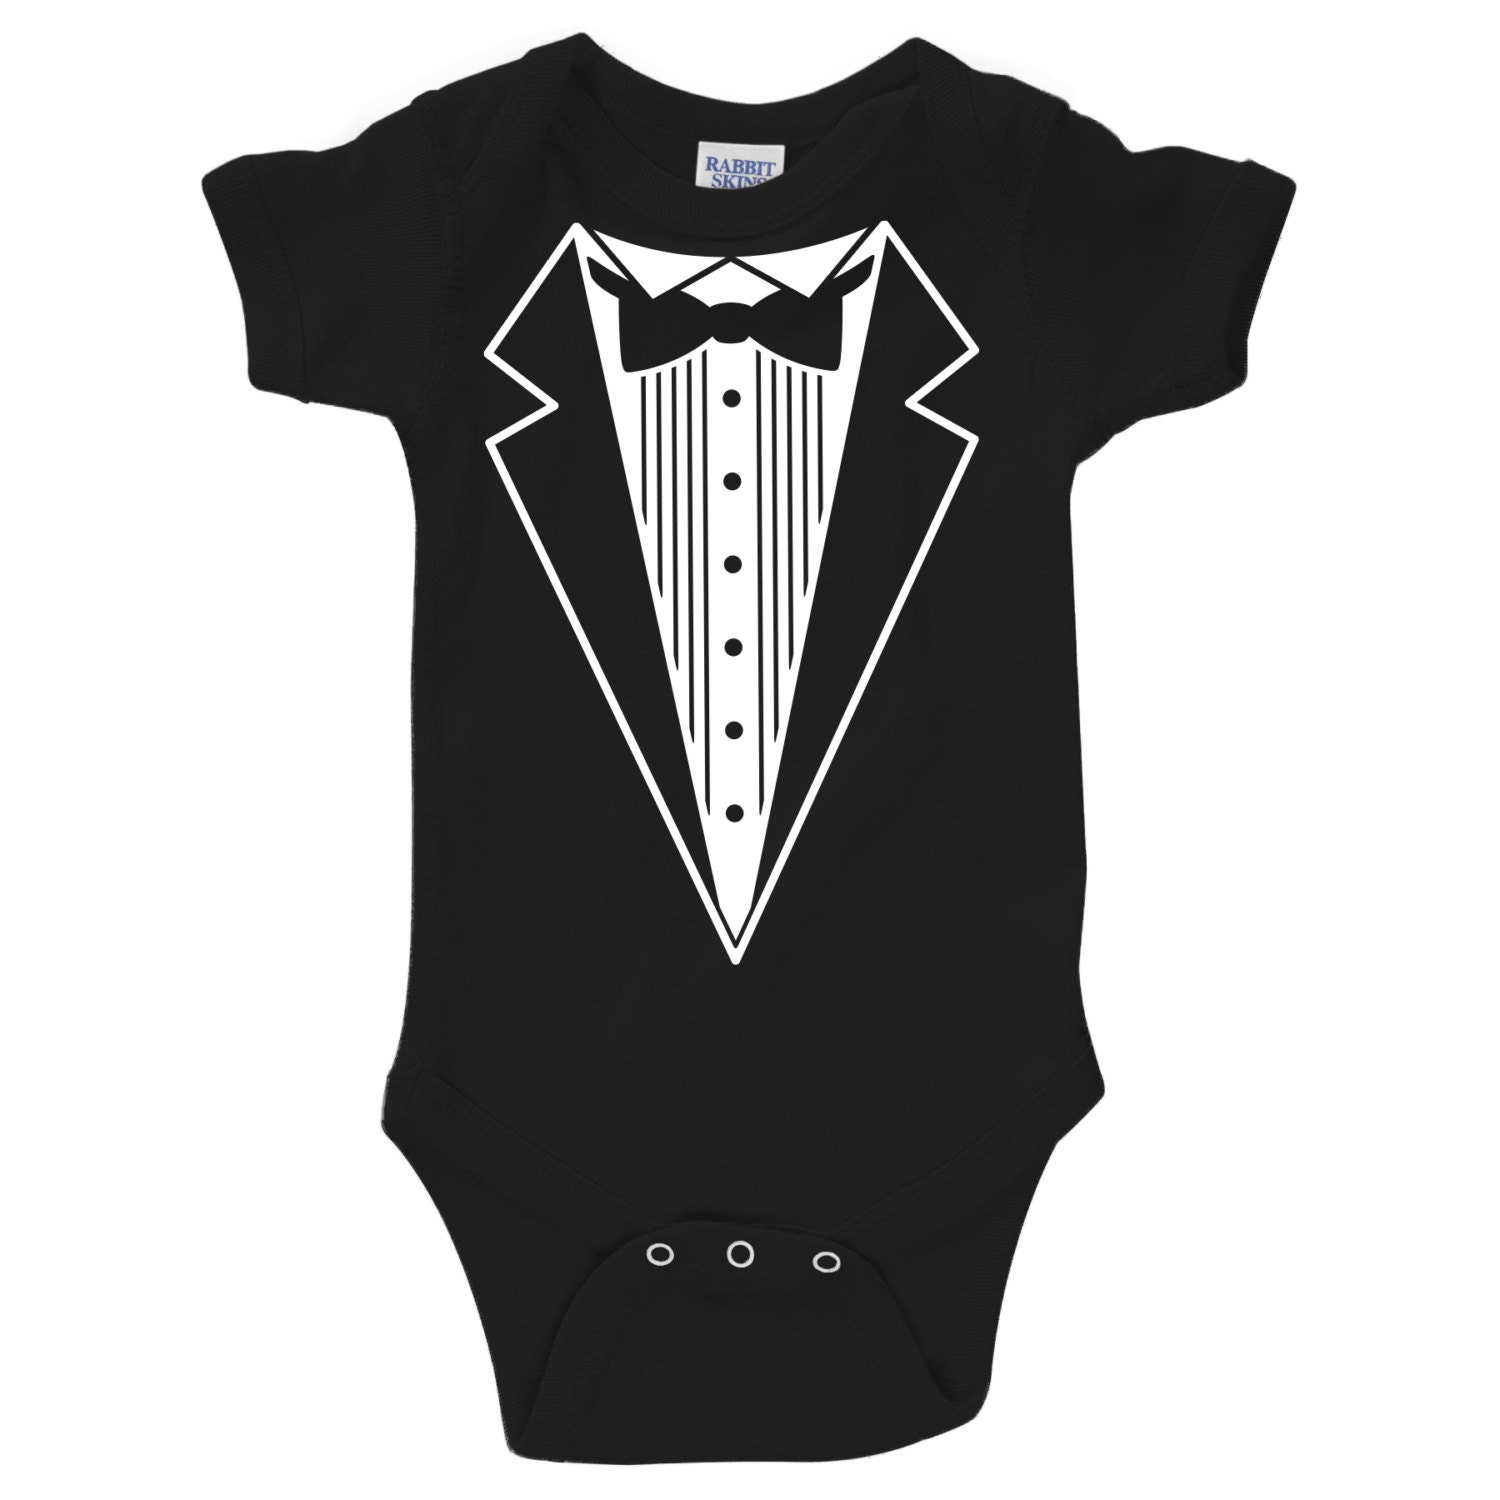 Shop for infant tuxedo shirt online at Target. Free shipping on purchases over $35 and save 5% every day with your Target REDcard.